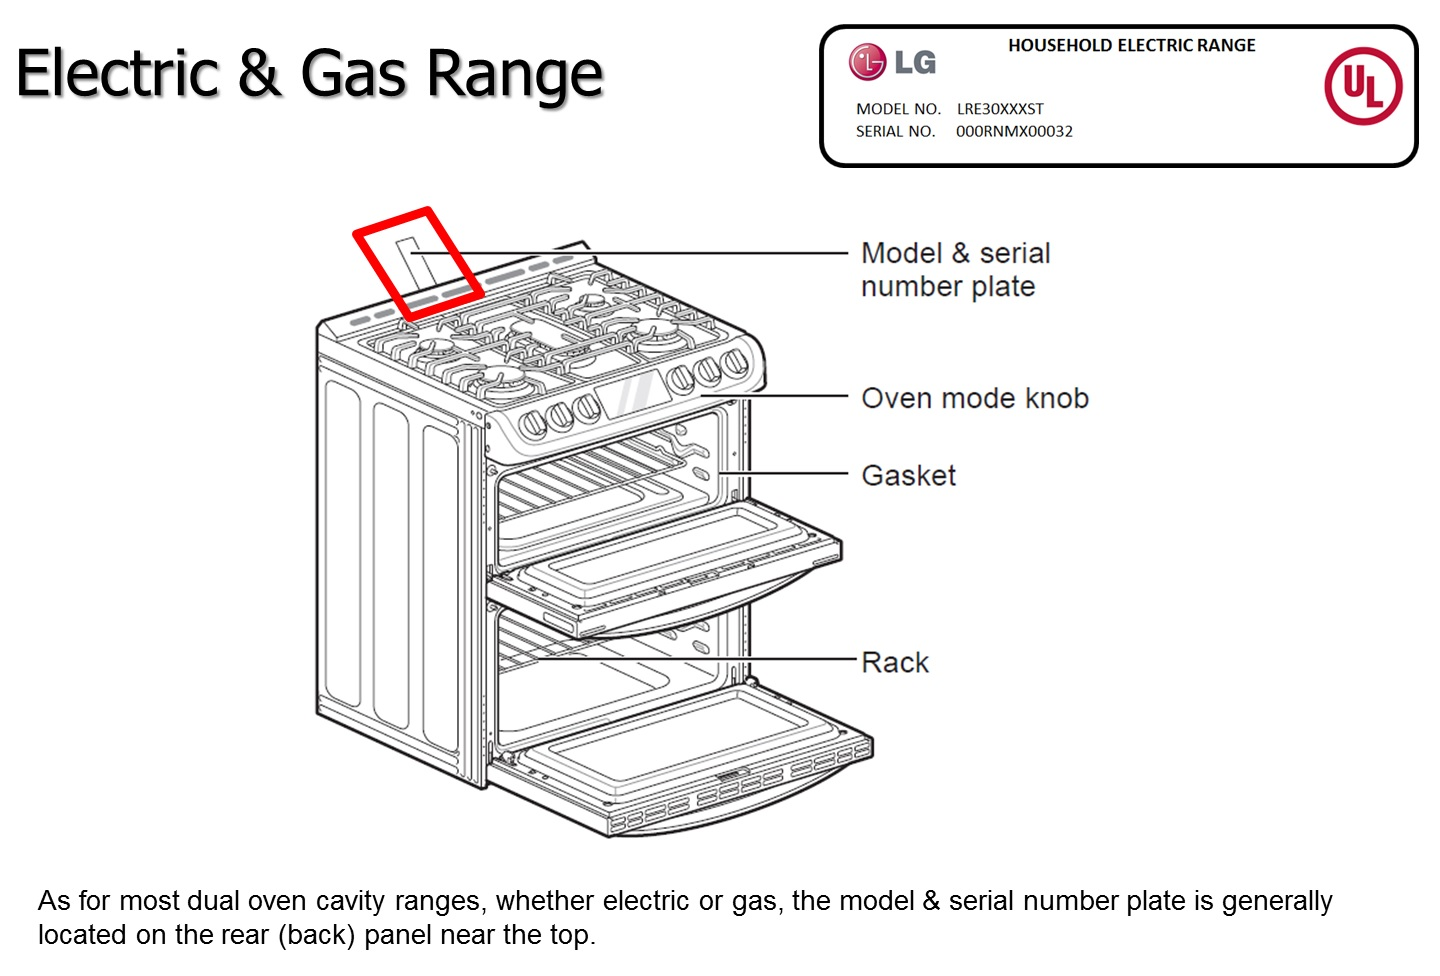 LG Help Library: Locate model and serial numbers on LG Range